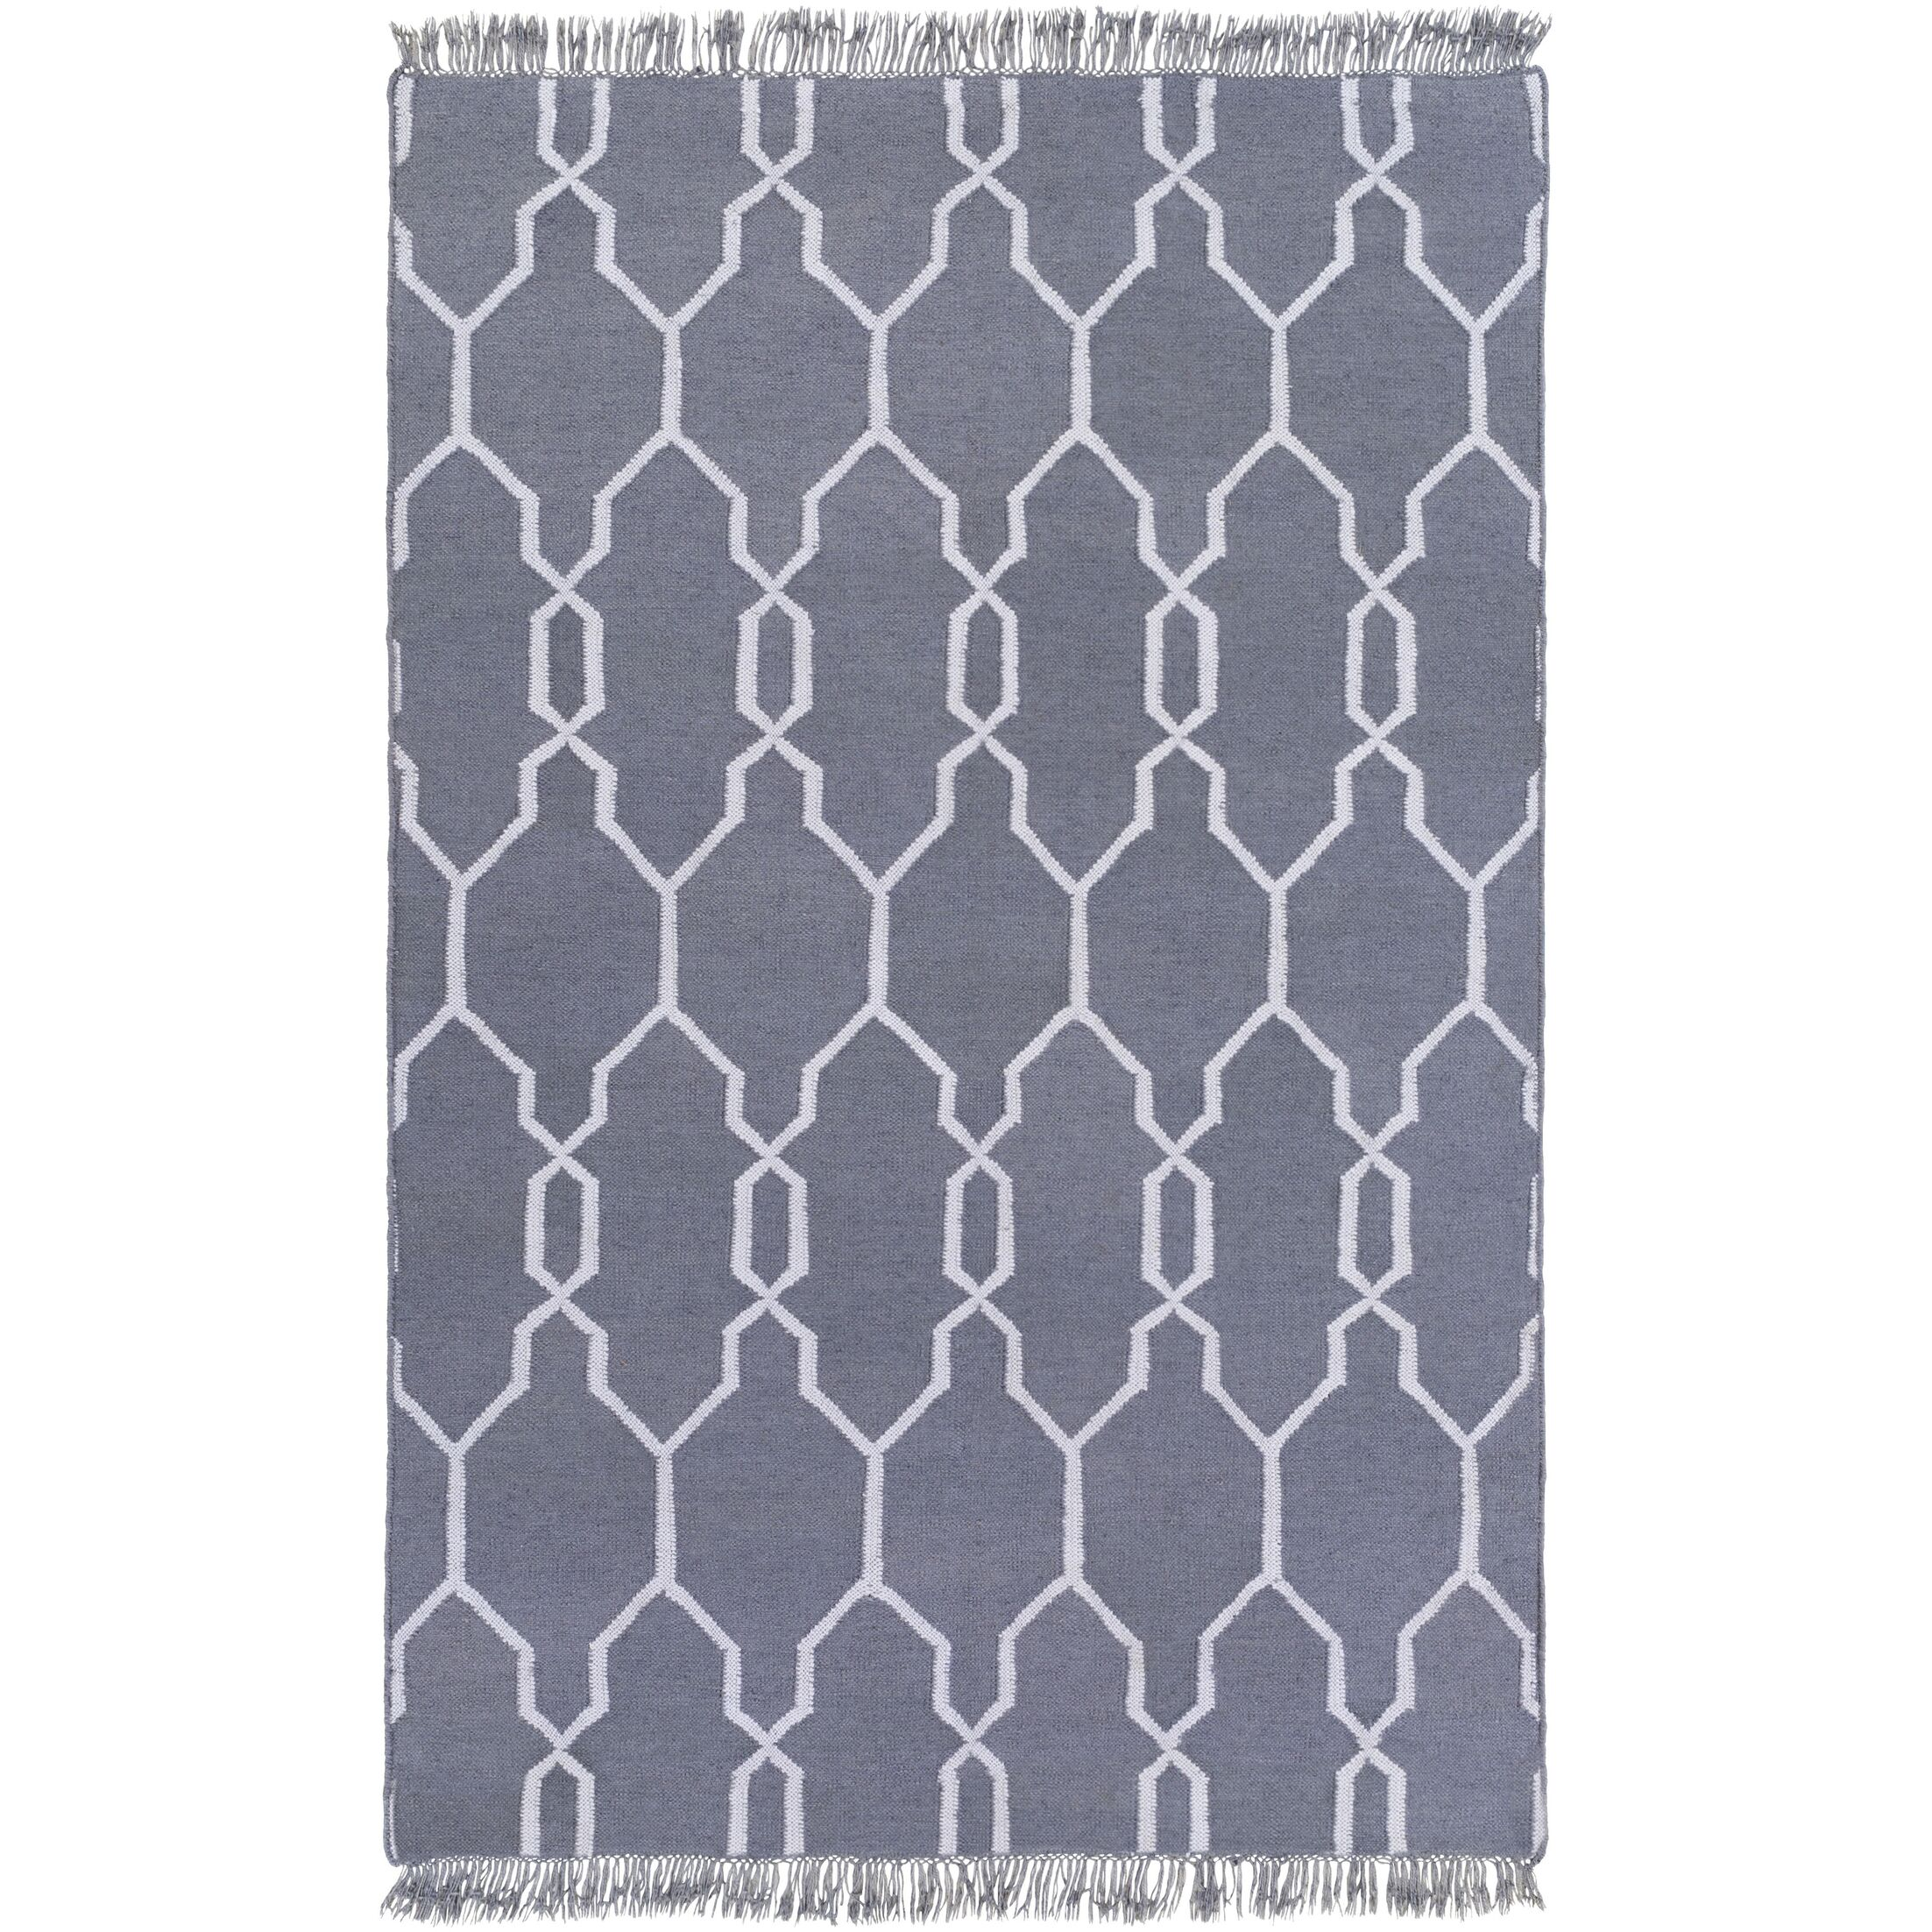 Larksville Hand-Woven Gray Outdoor Area Rug Rug Size: Rectangle 5' x 8'